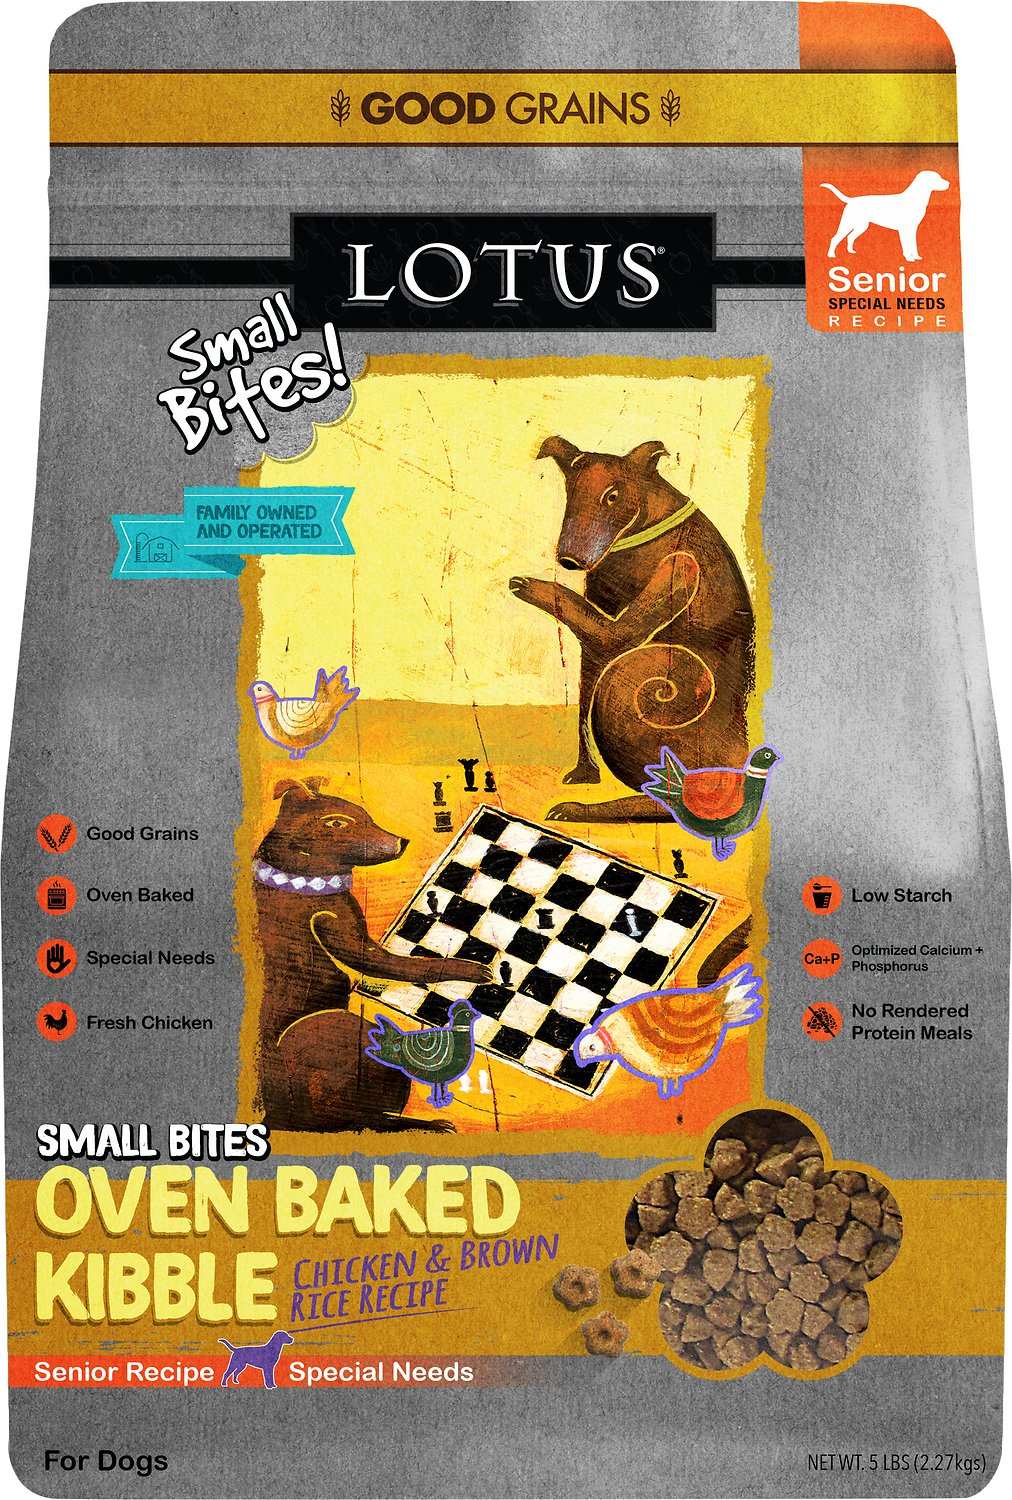 Lotus Small Bites Wholesome Senior Recipe